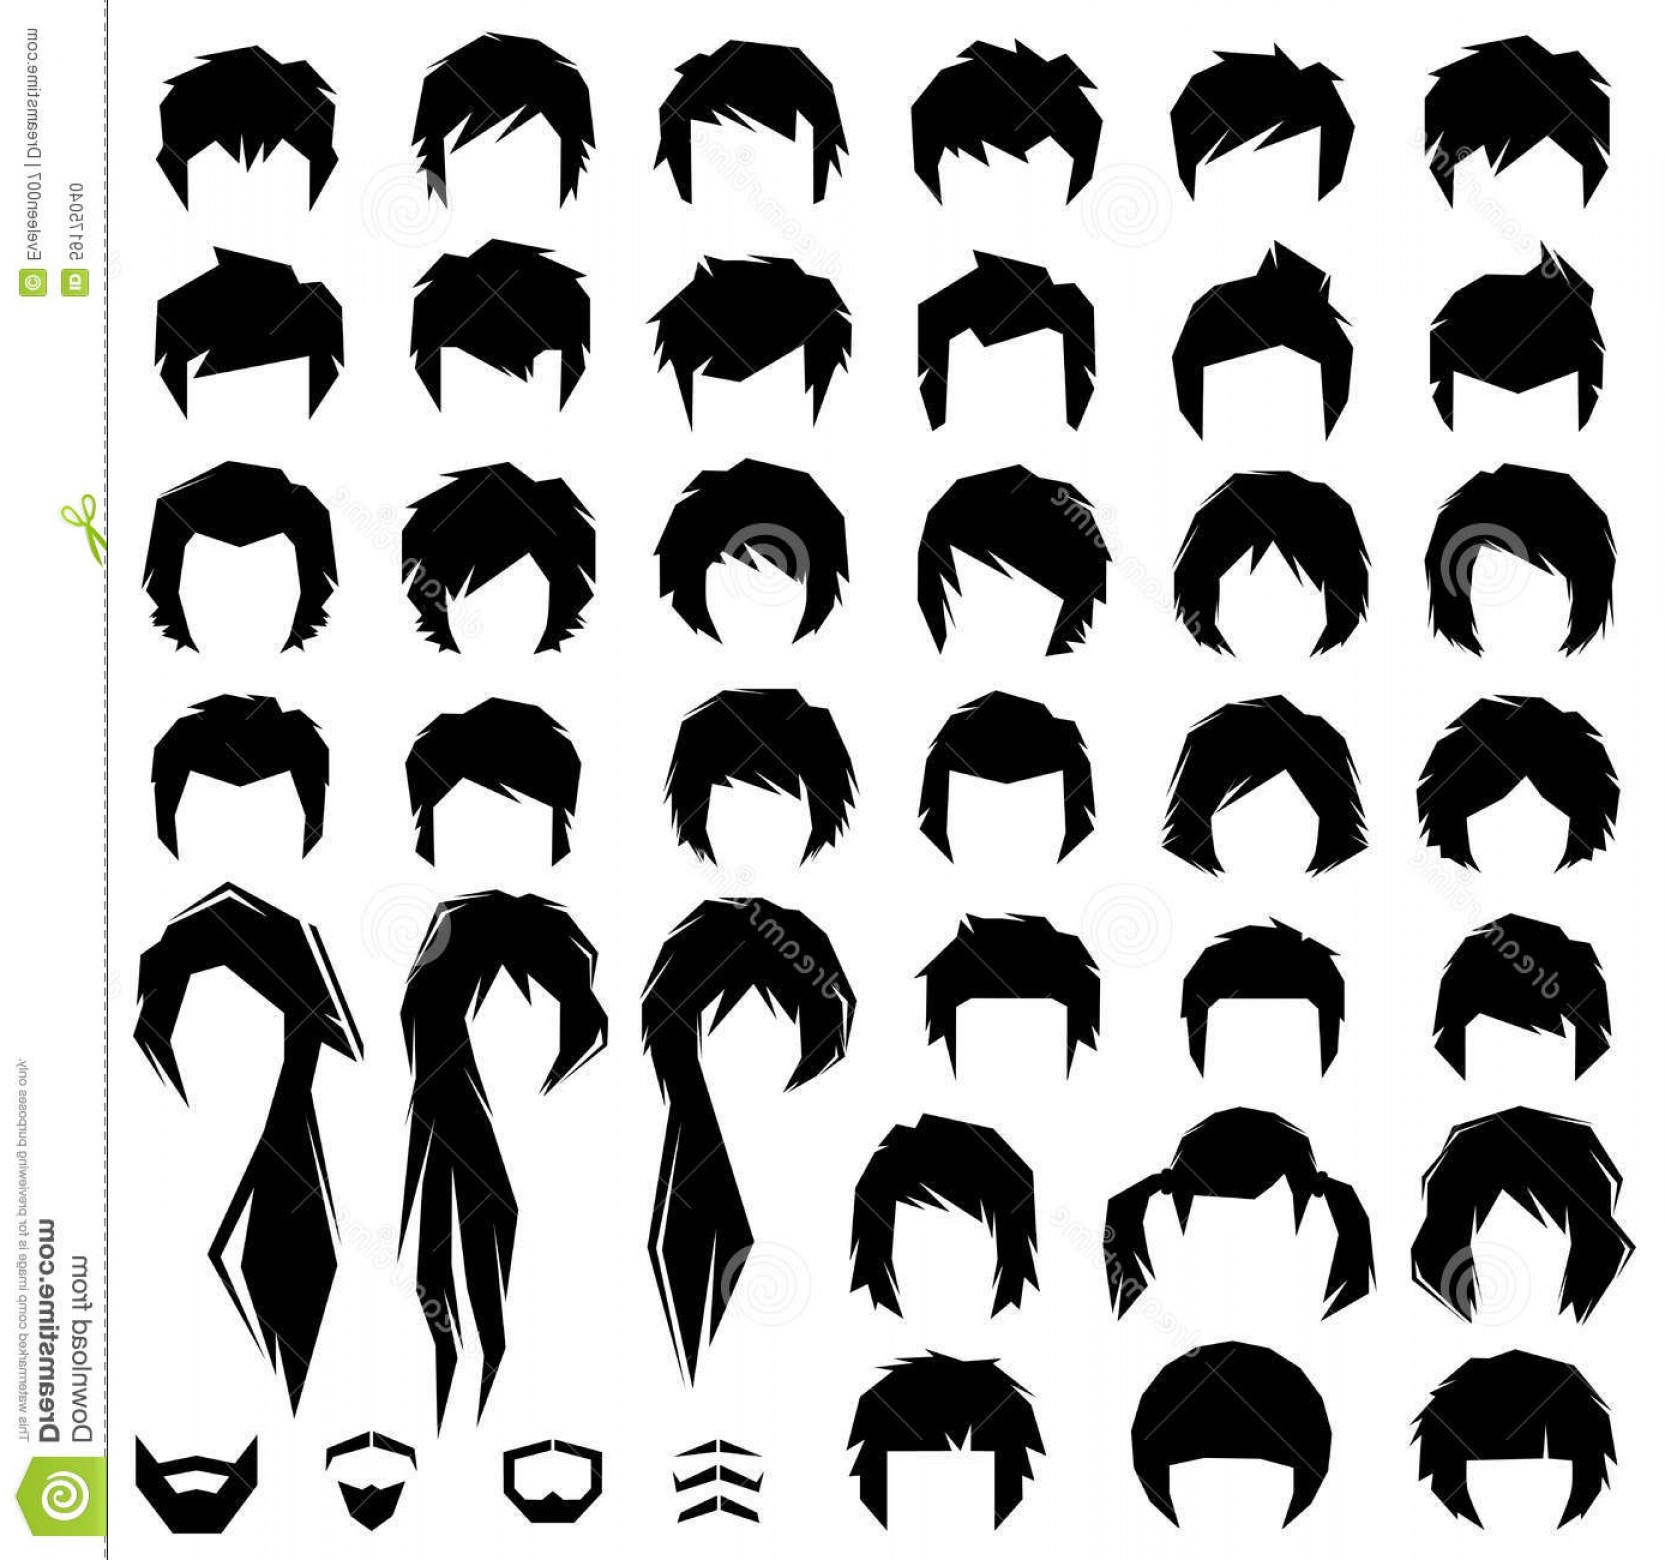 1665x1560 Stock Illustration Hair Vector Hairstyle Woman Man Silhouette